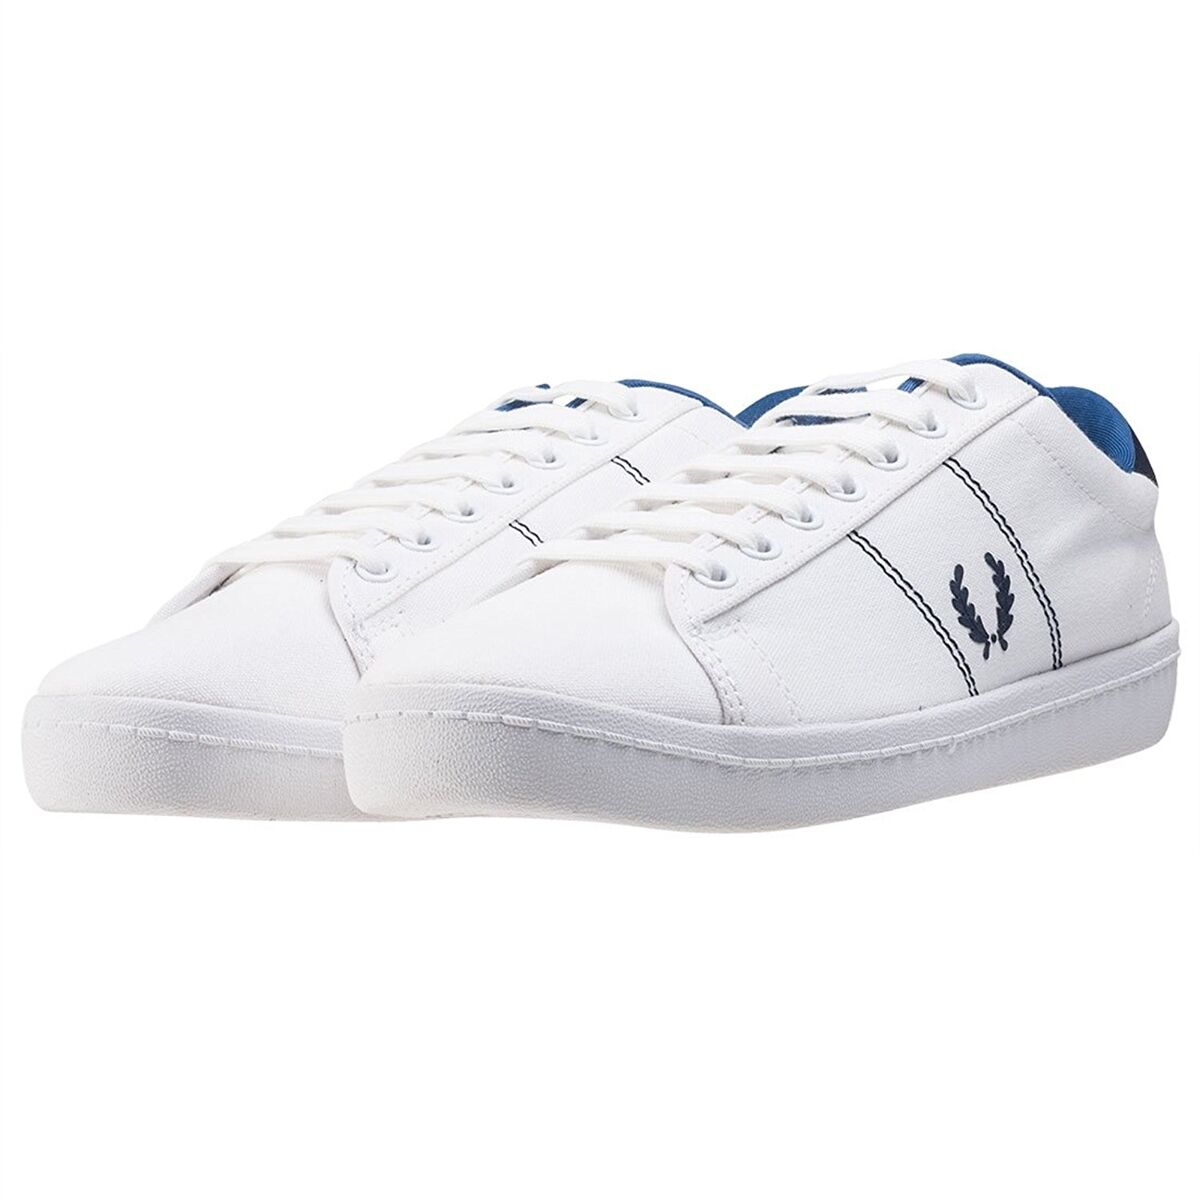 Scarpe casual da uomo  uomo Fred Perry Shoes White B2 Tennis Shoes White Sneakers New